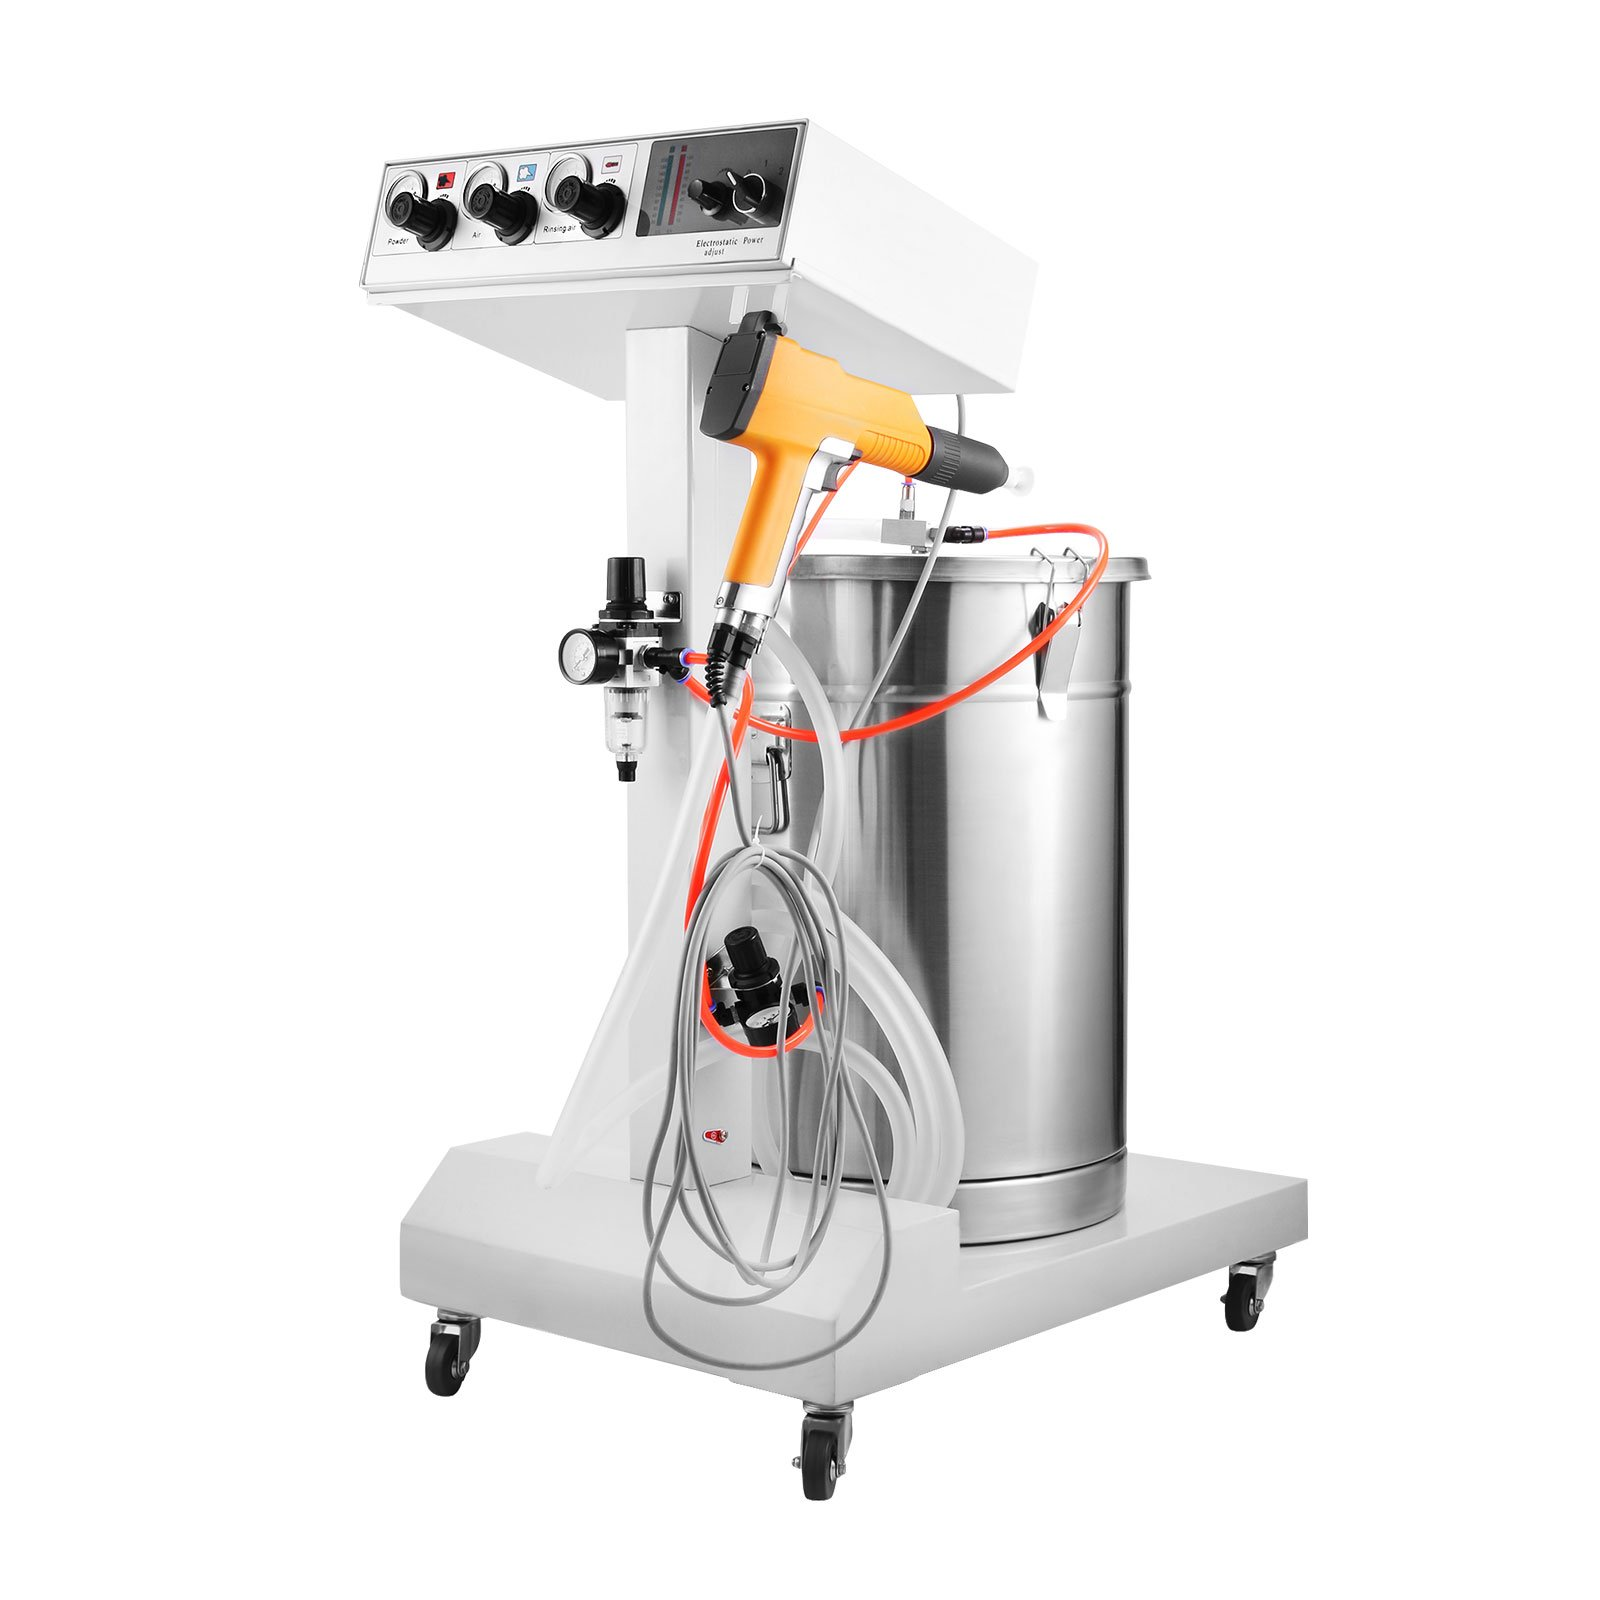 Mophorn Powder Coating Machine 40W 50L Capacity Electrostatic Powder Coating Machine Spraying Gun Paint 550g /min WX-101 Powder Coating System (40W 50L)